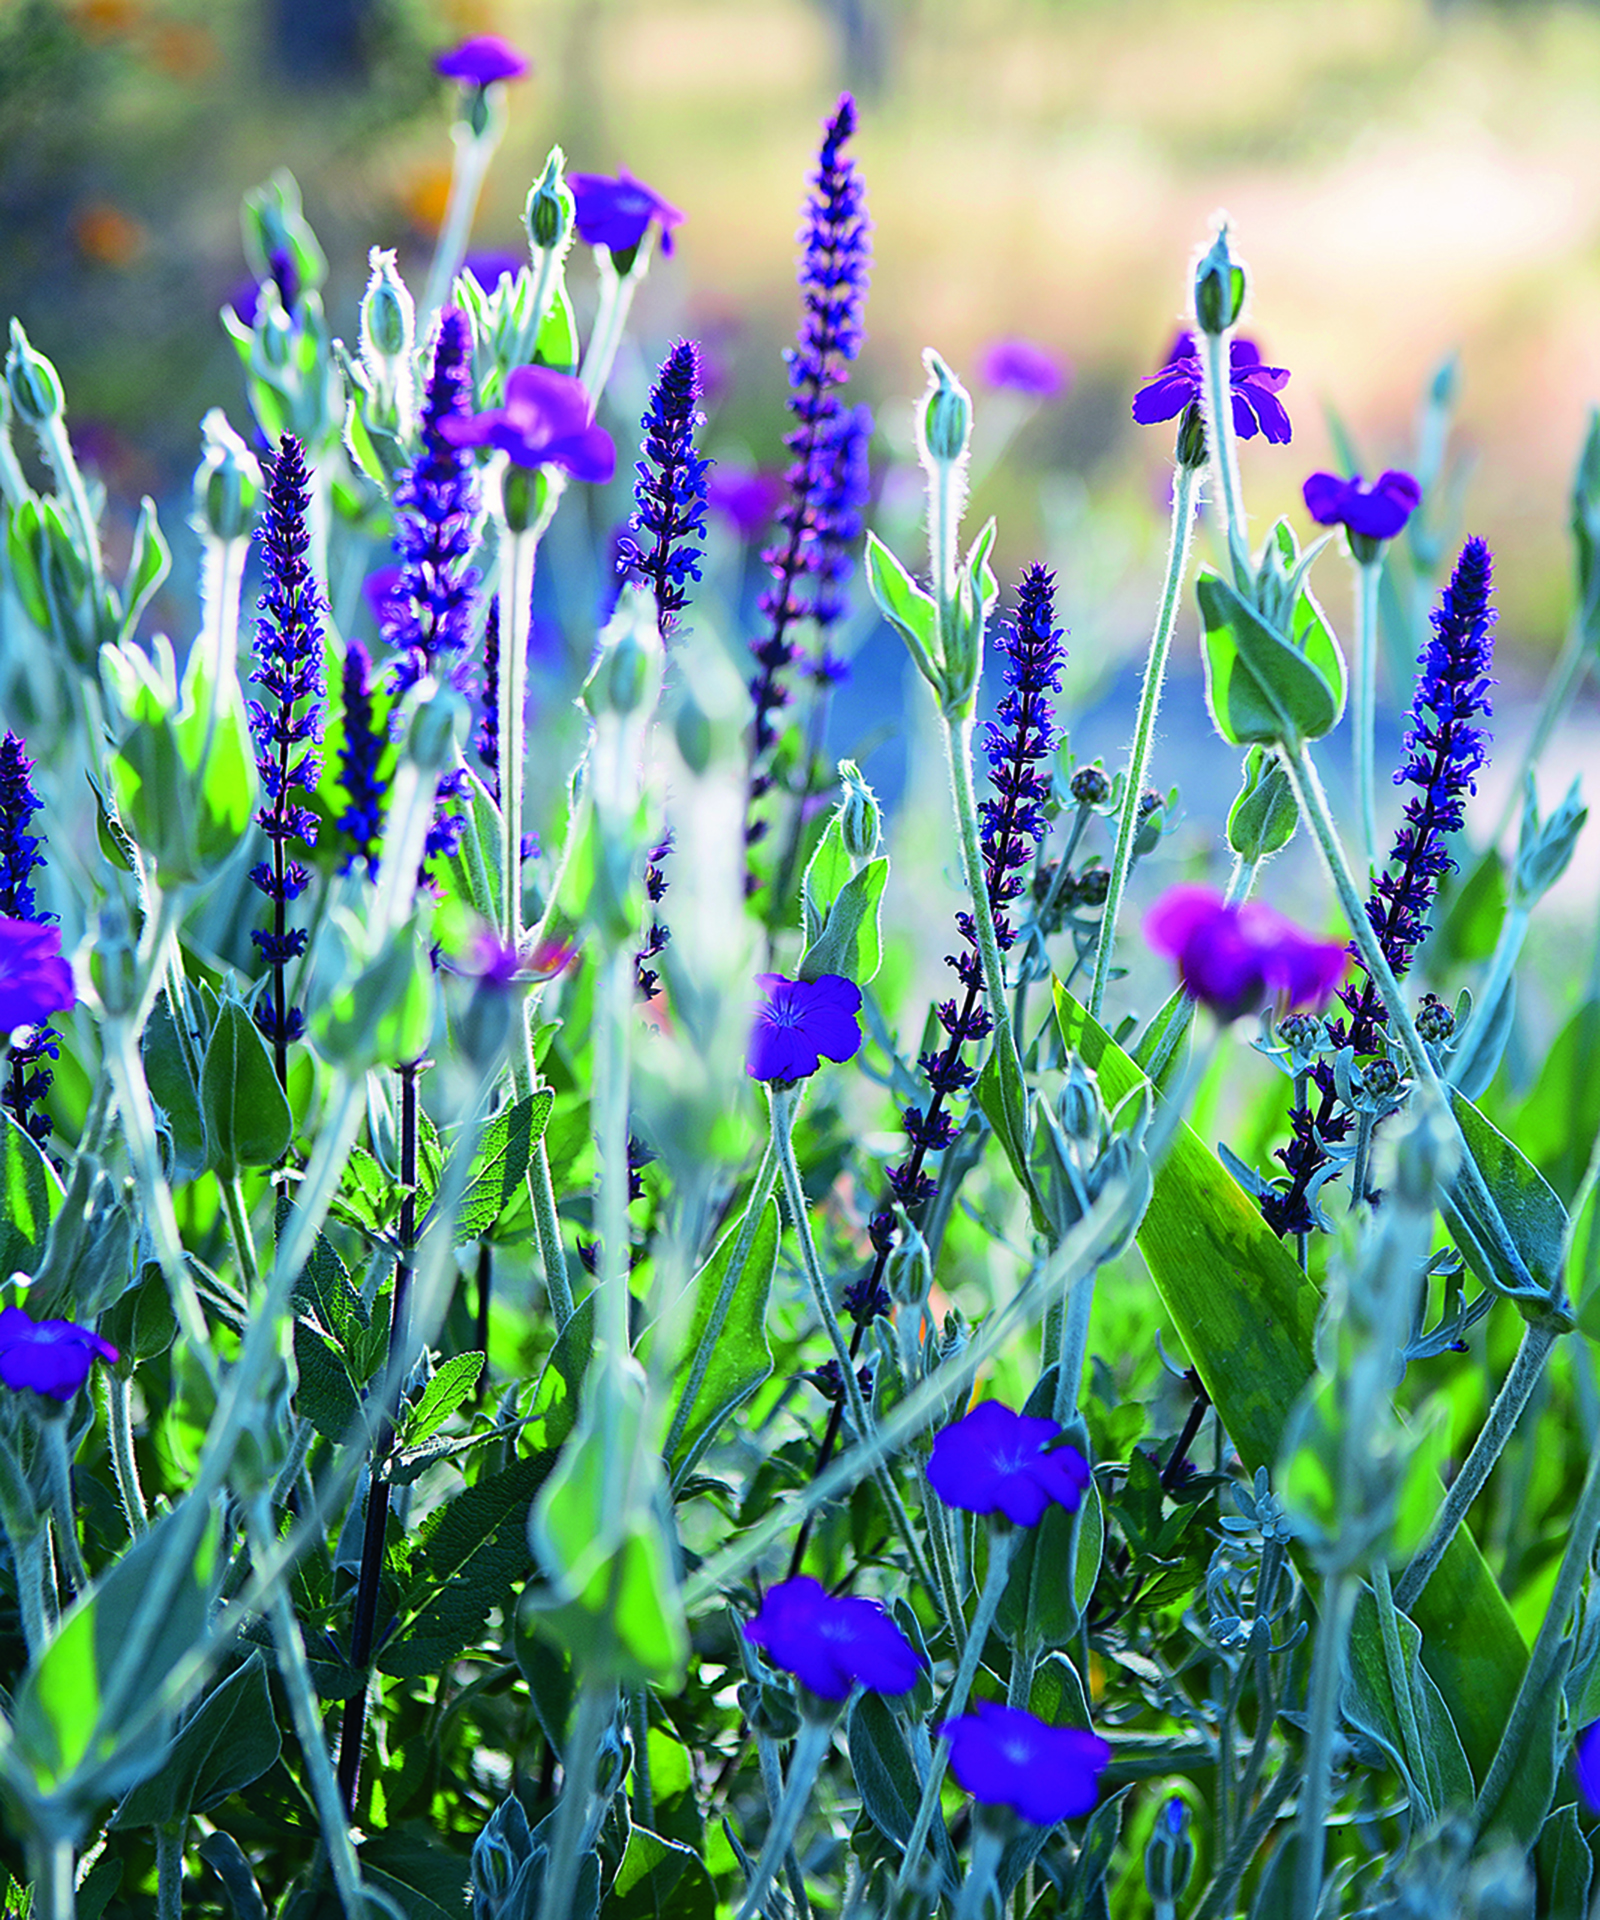 February Gardening Ideas: Jackie French's Garden Tips For February